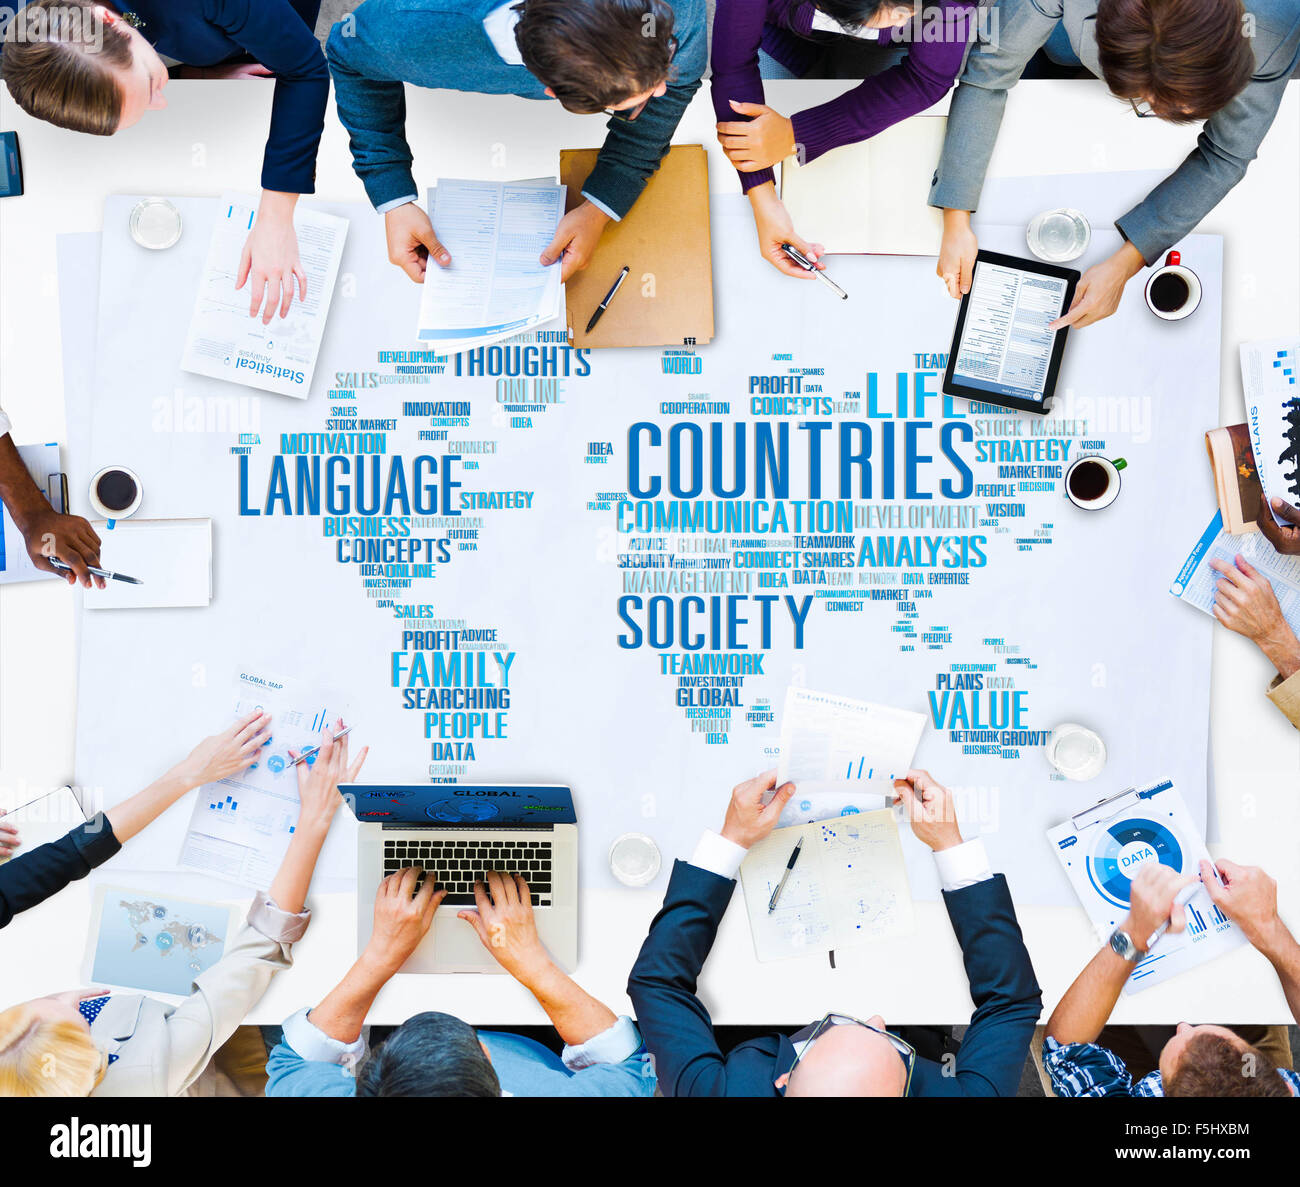 Digital world map countries stock photos digital world map business people meeting countries world map concept stock image gumiabroncs Choice Image